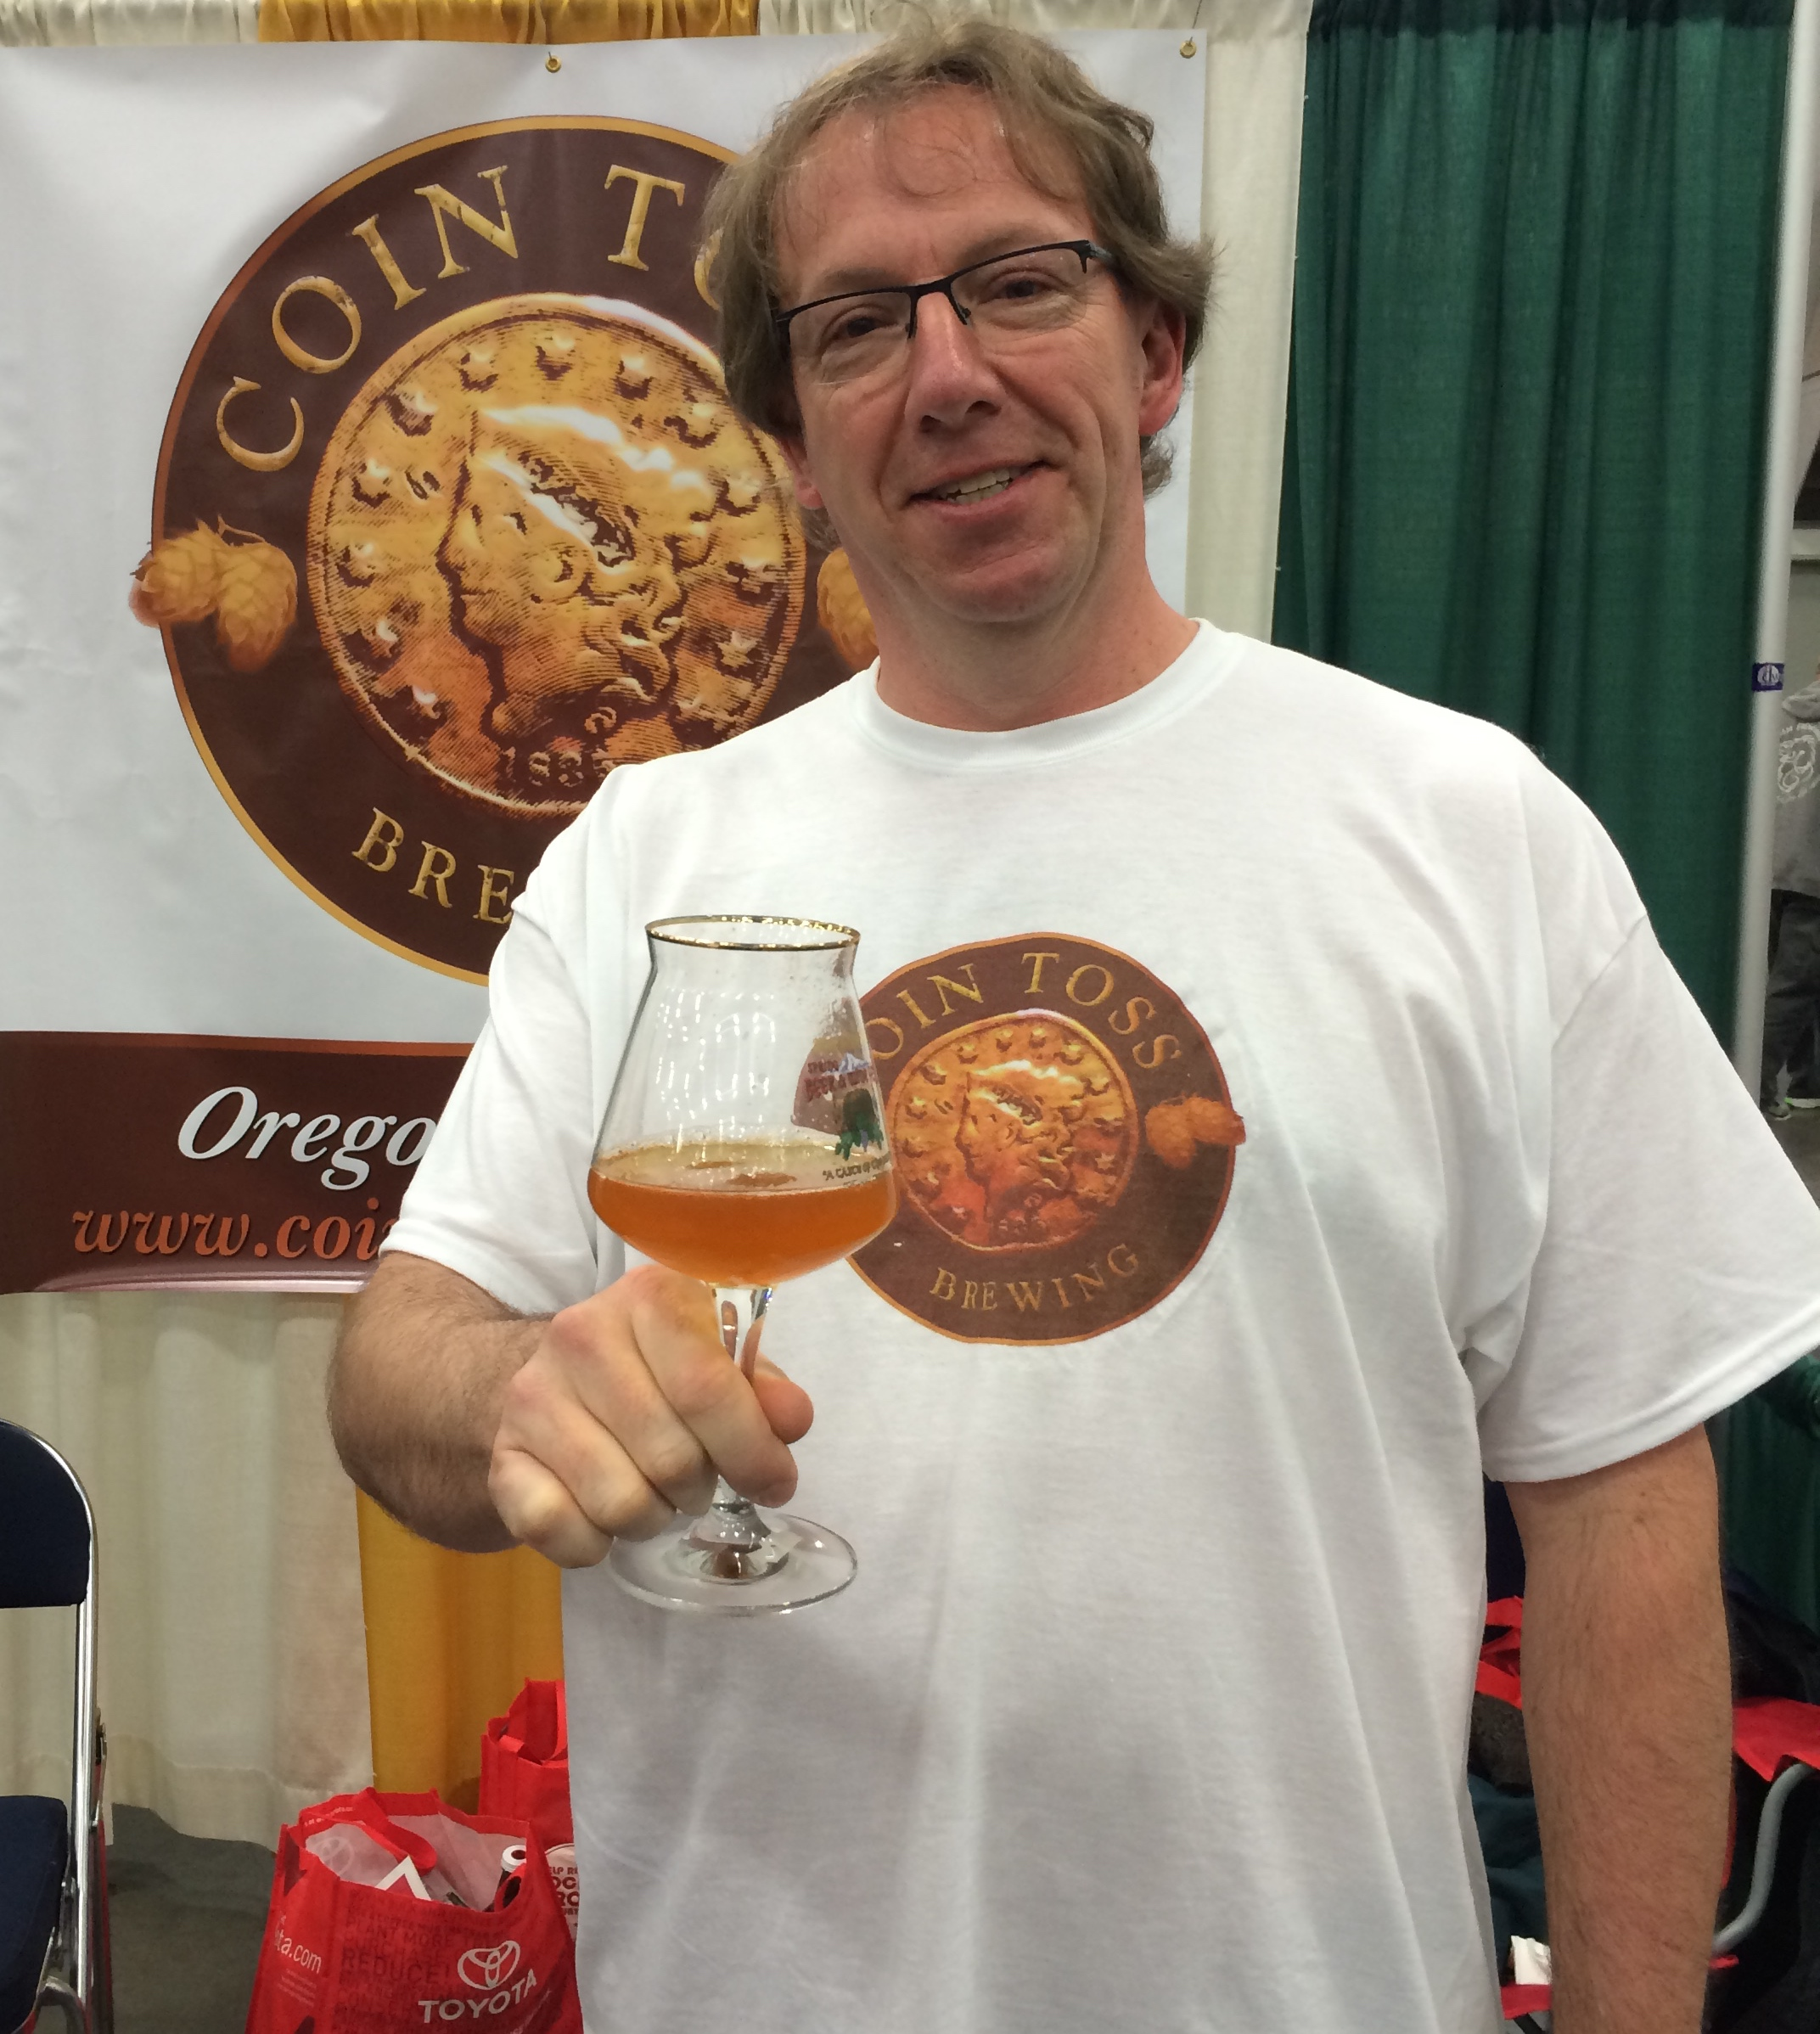 Tim Hohl of Coin Toss Brewing